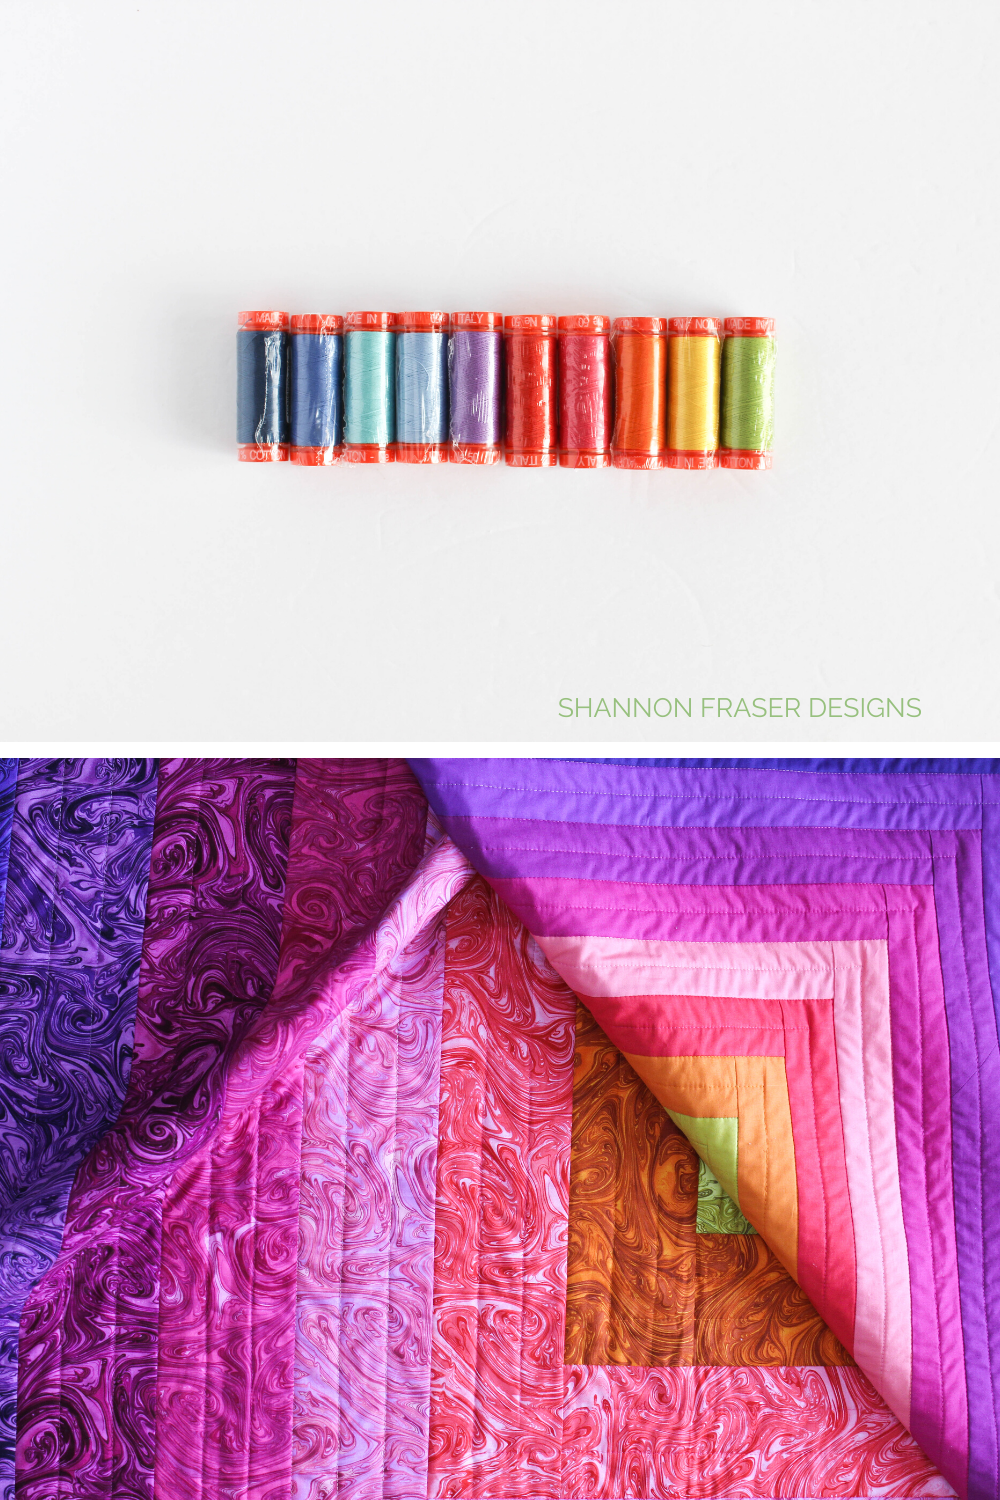 Small spools of Aurifil Thread many of which were used to quilt the Reverberance quilt - the Marble version | Aurifil Artisan Collection 2021 | Shannon Fraser Designs #modernlogcabinquilt